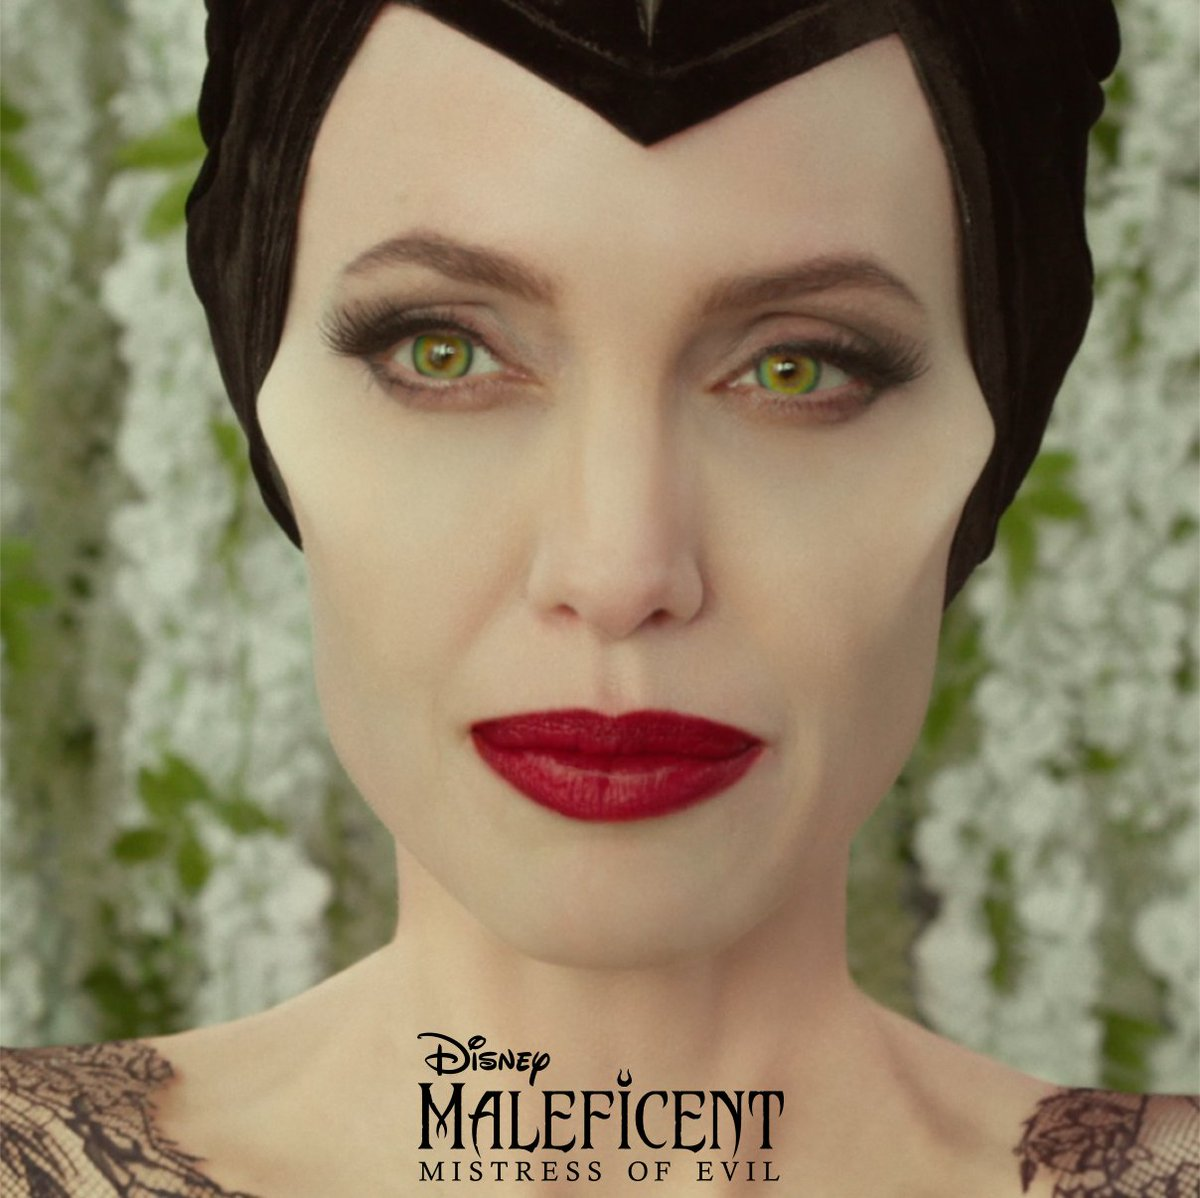 #Maleficent: Mistress of Evil is truly fantastical. See it in theaters this Friday! Get tickets: di.sn/60031GduH